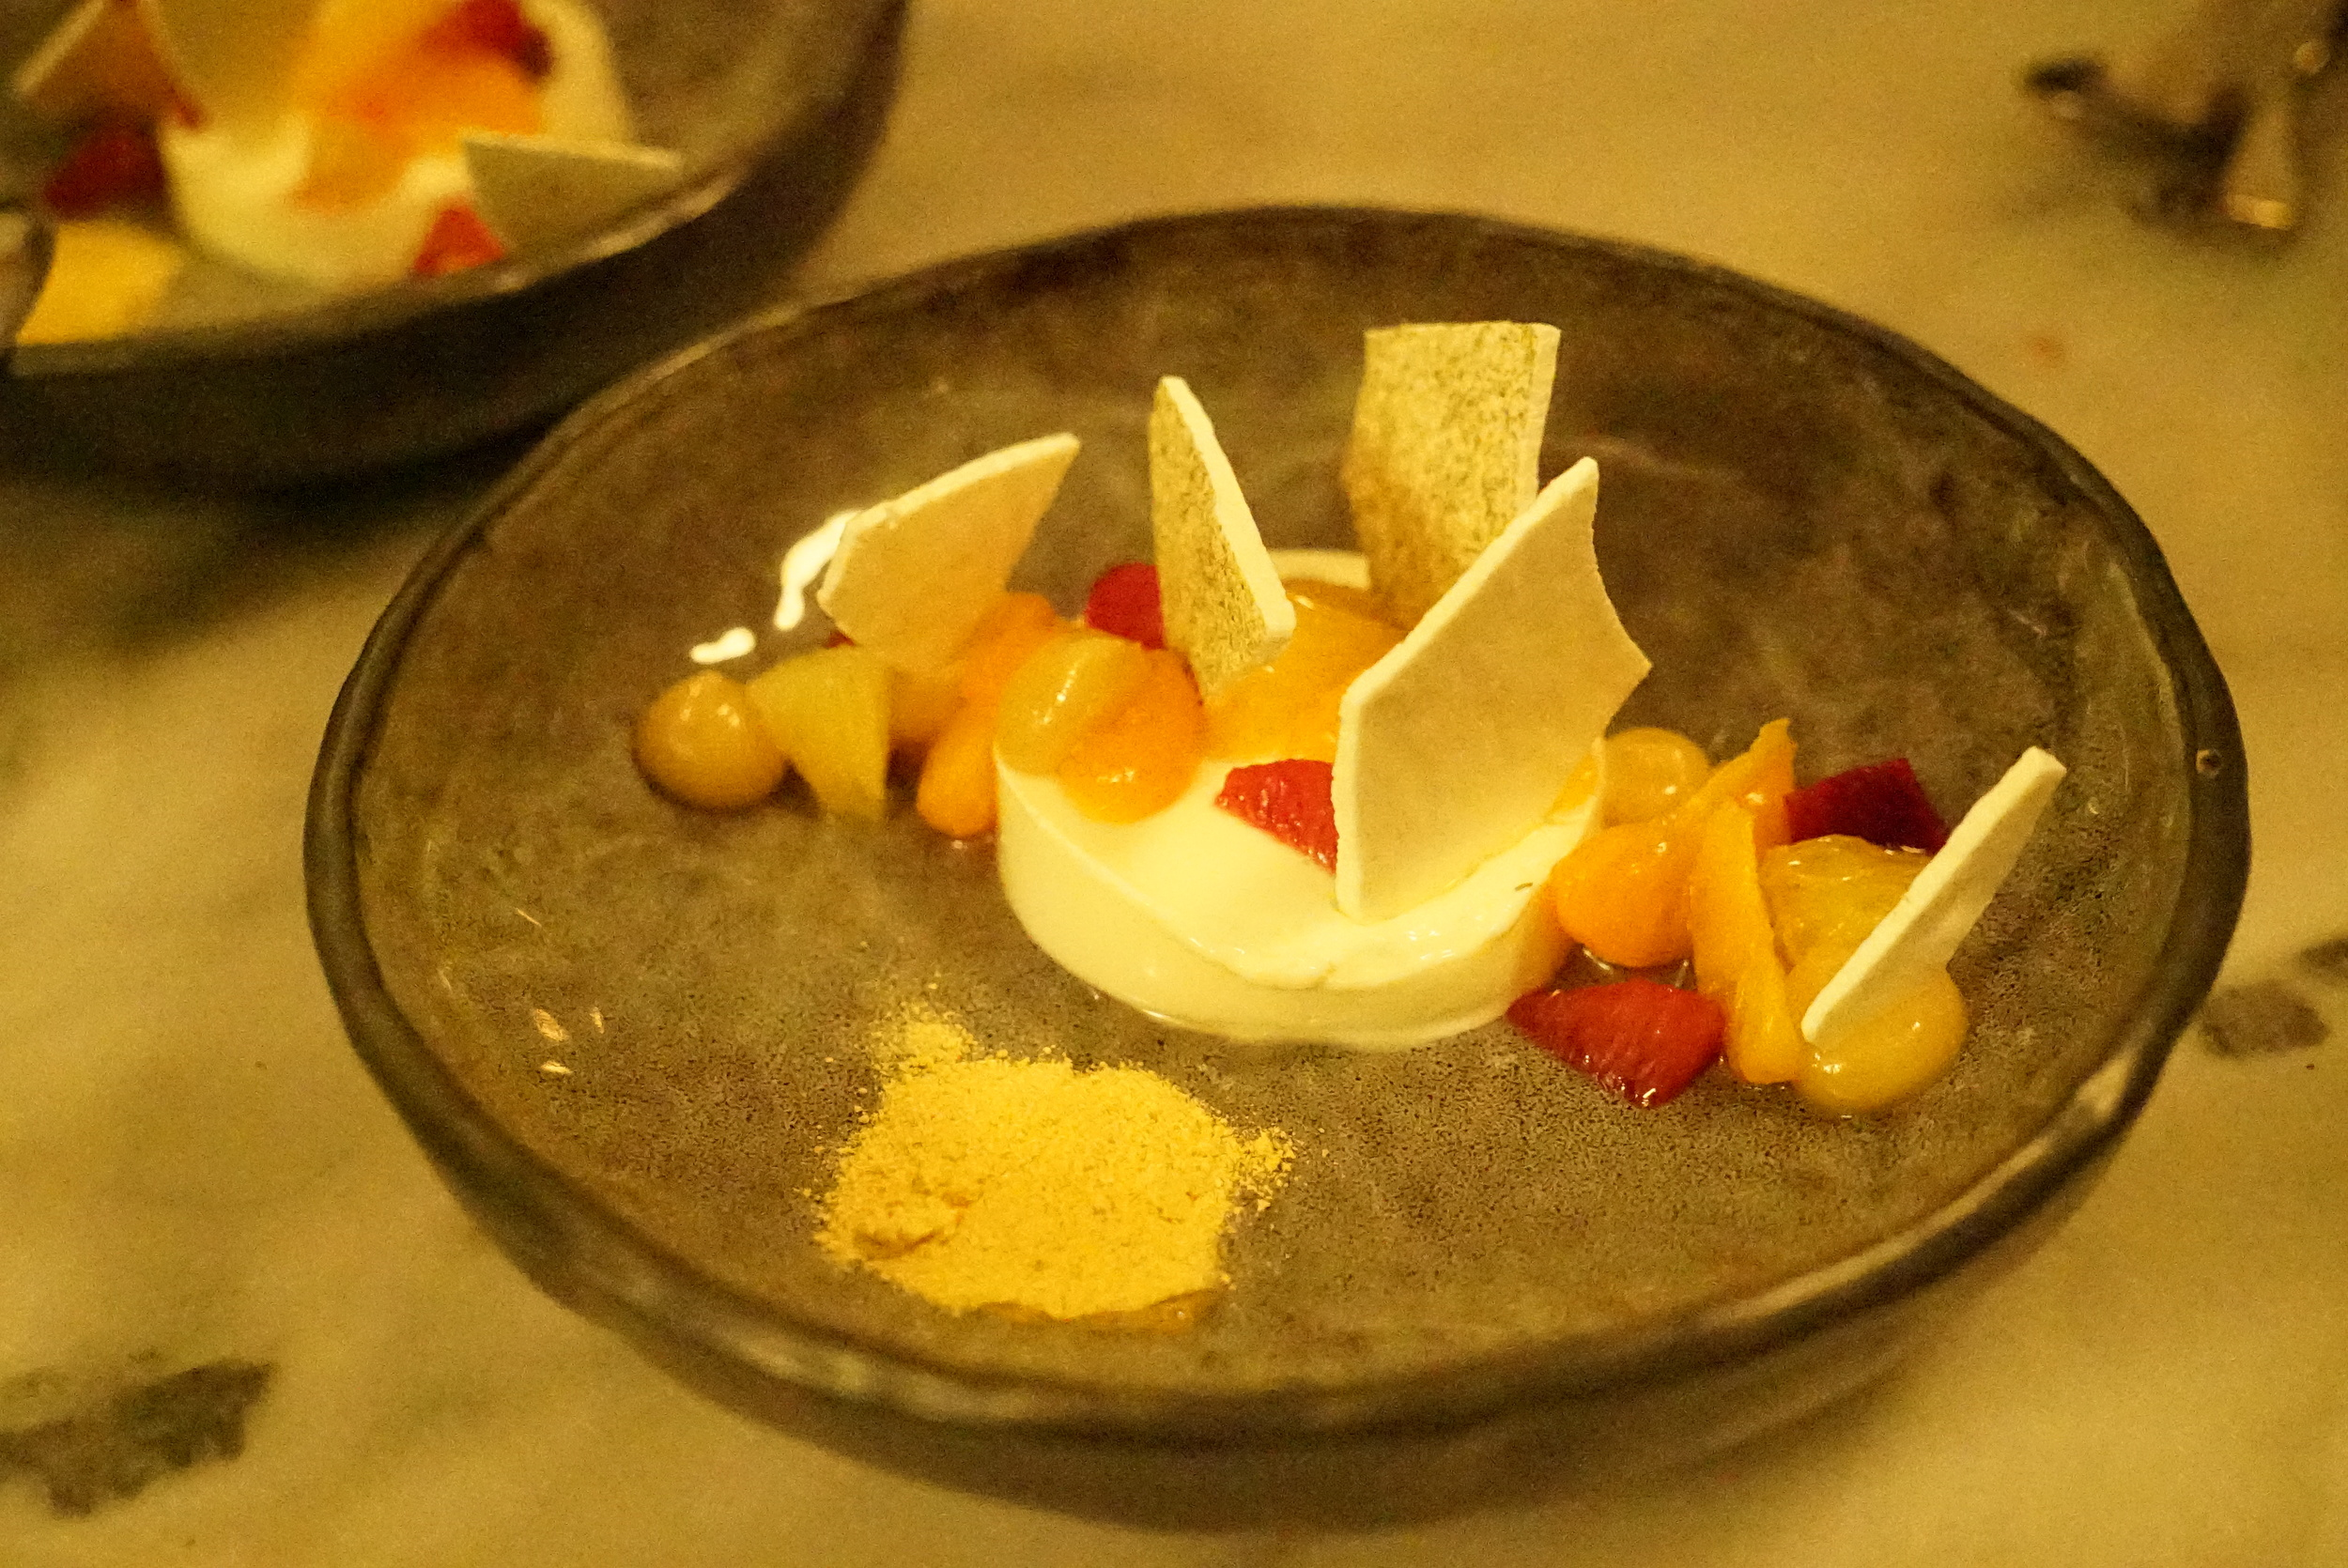 Sheep milk yoghurt and white chocolate panna cotta with citrus fruits and lemon myrtle meringue.